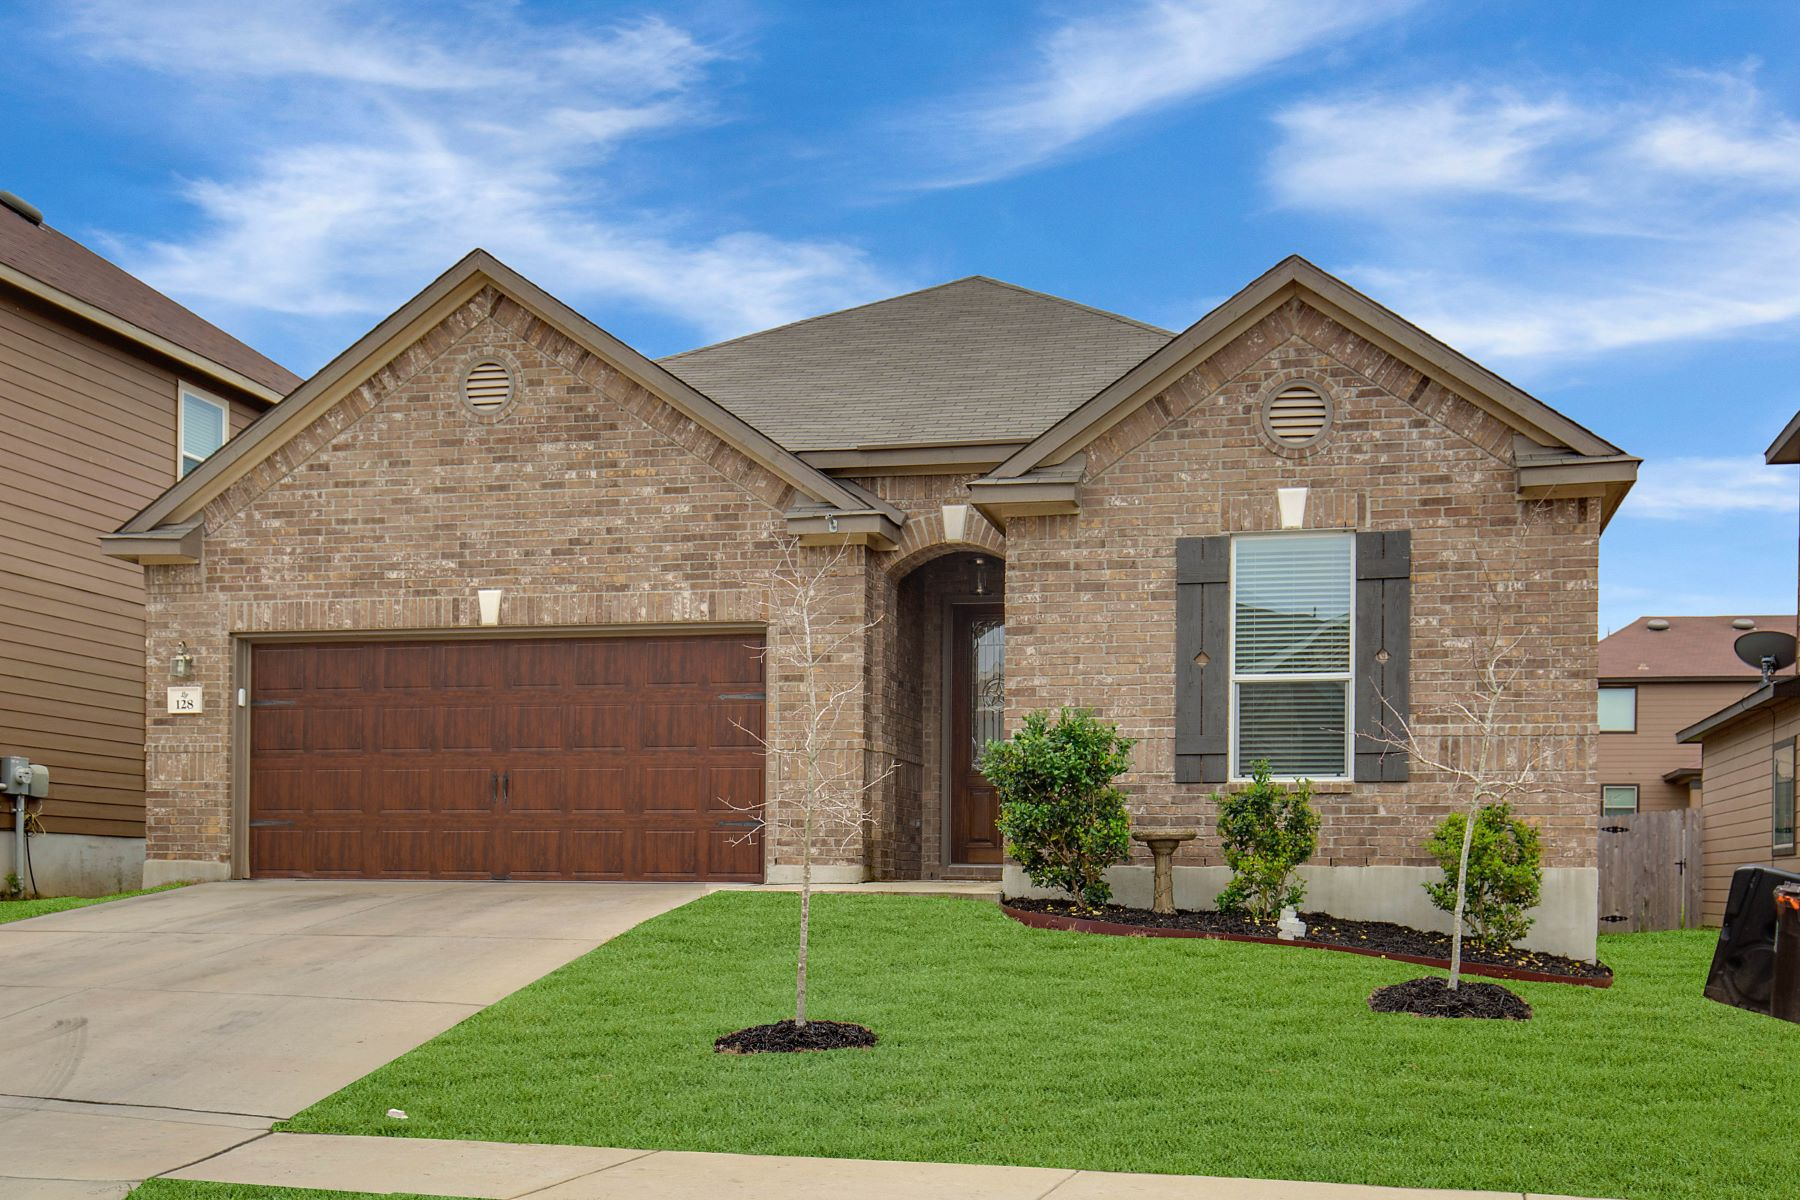 Single Family Home for Sale at Exceptional Single-Story Home 128 Landmark Park, Cibolo, Texas, 78108 United States